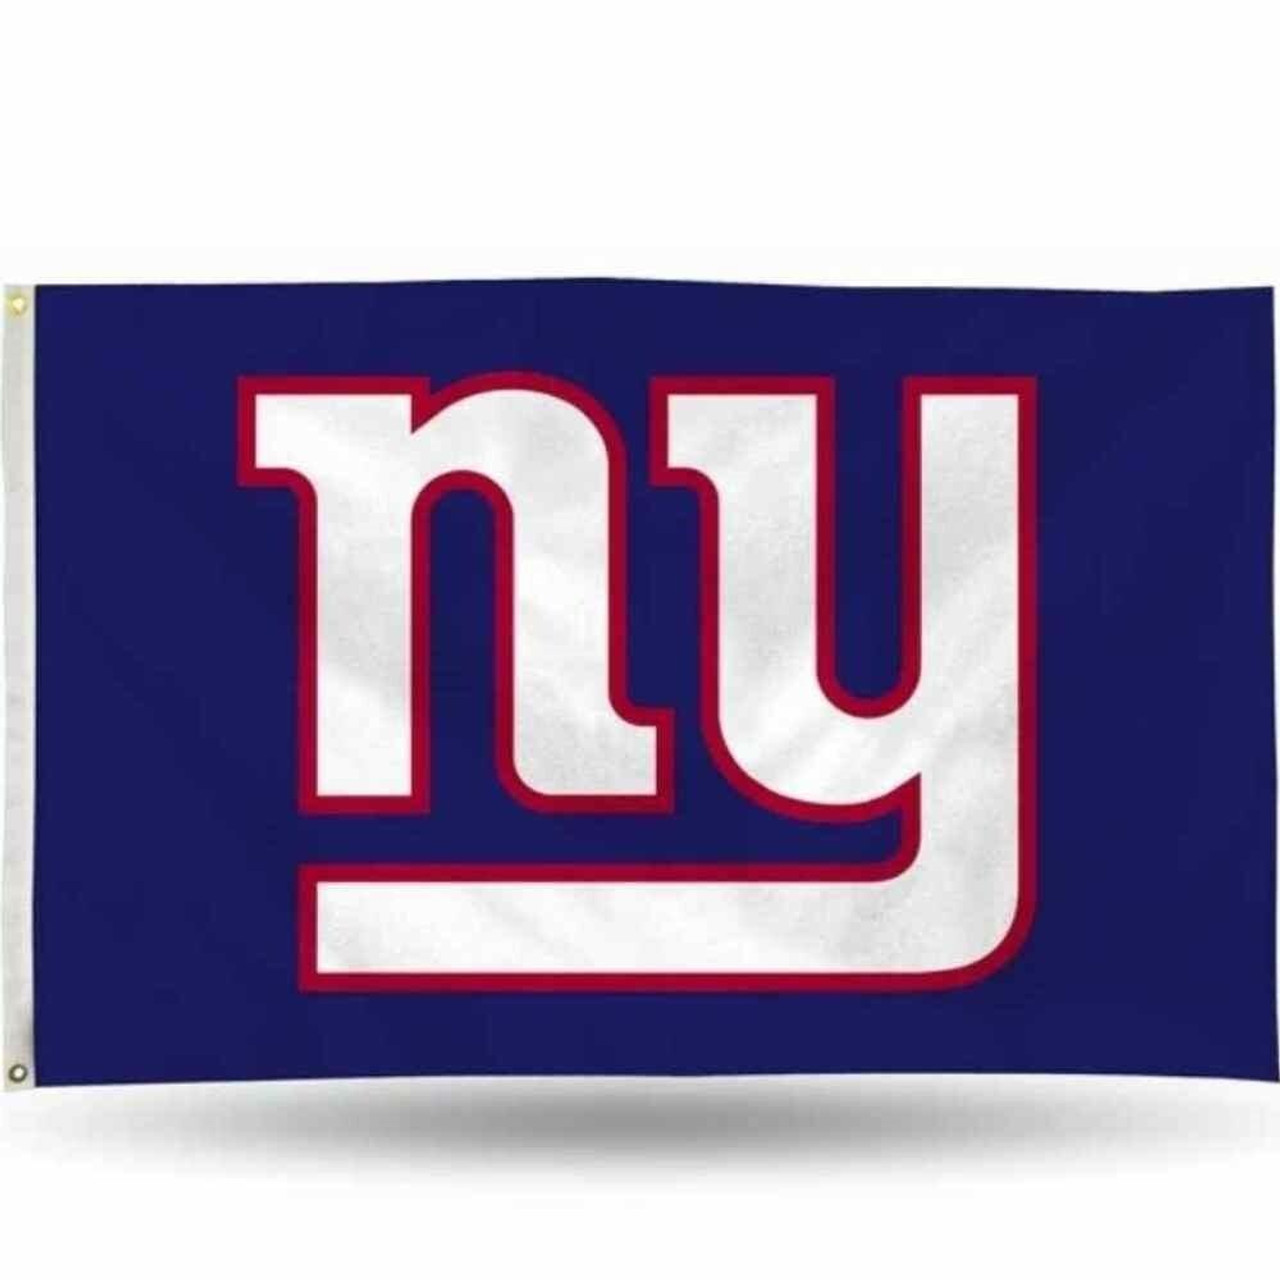 The New York Giants flag has a navy background with NY in white letters outlined in red.